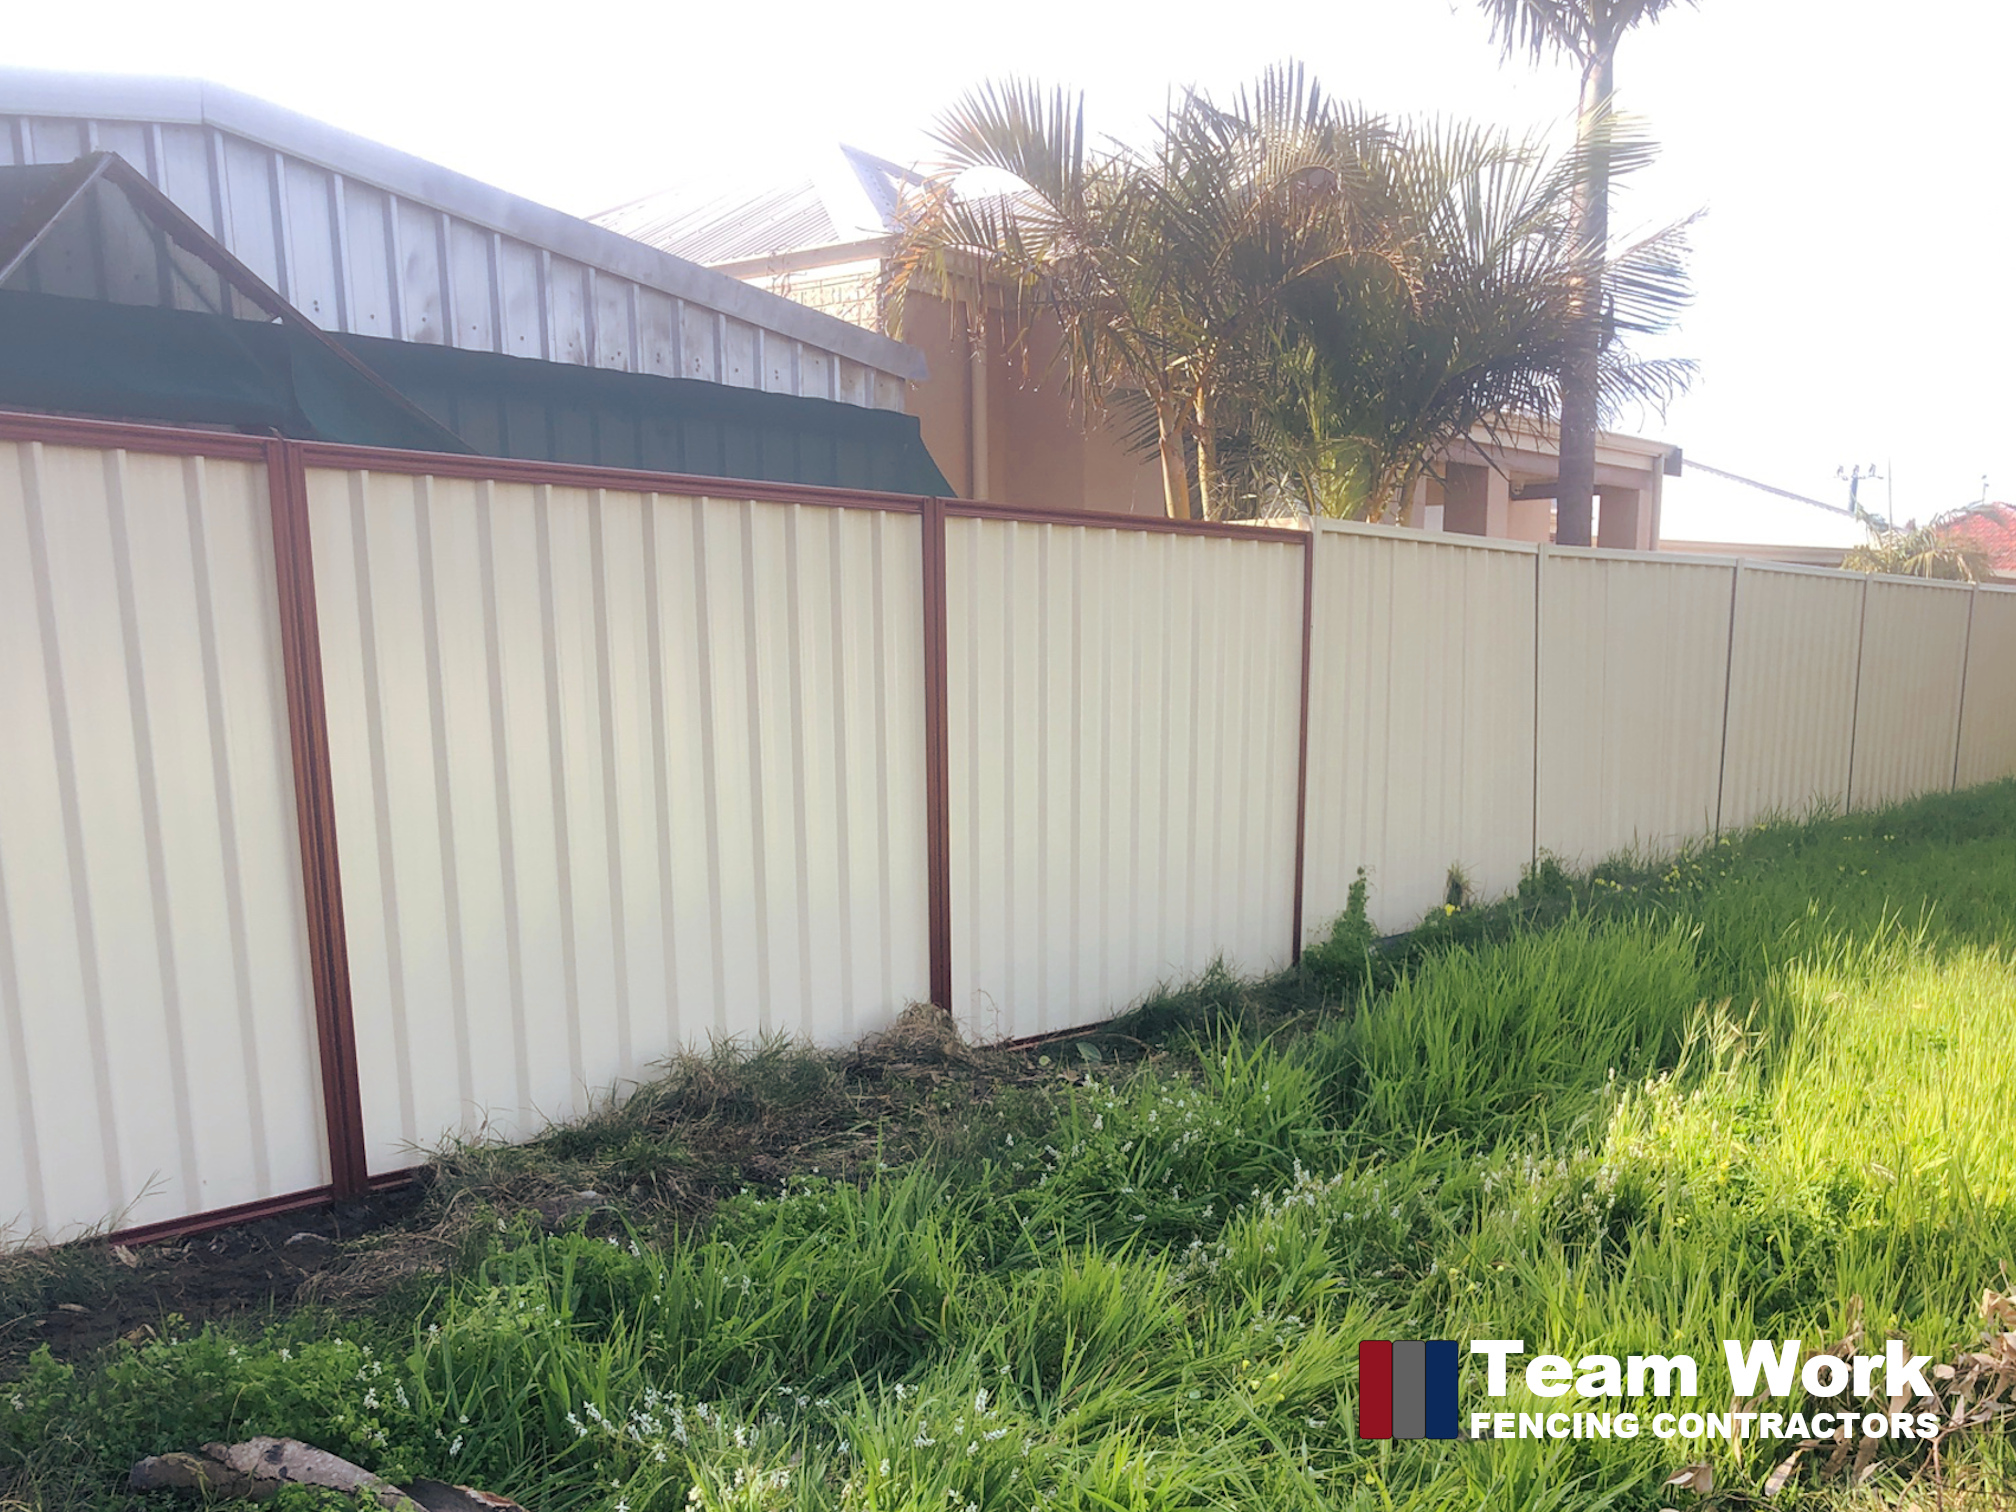 Two Tone Colorbond Fence Enhancement in South Bunbury WA